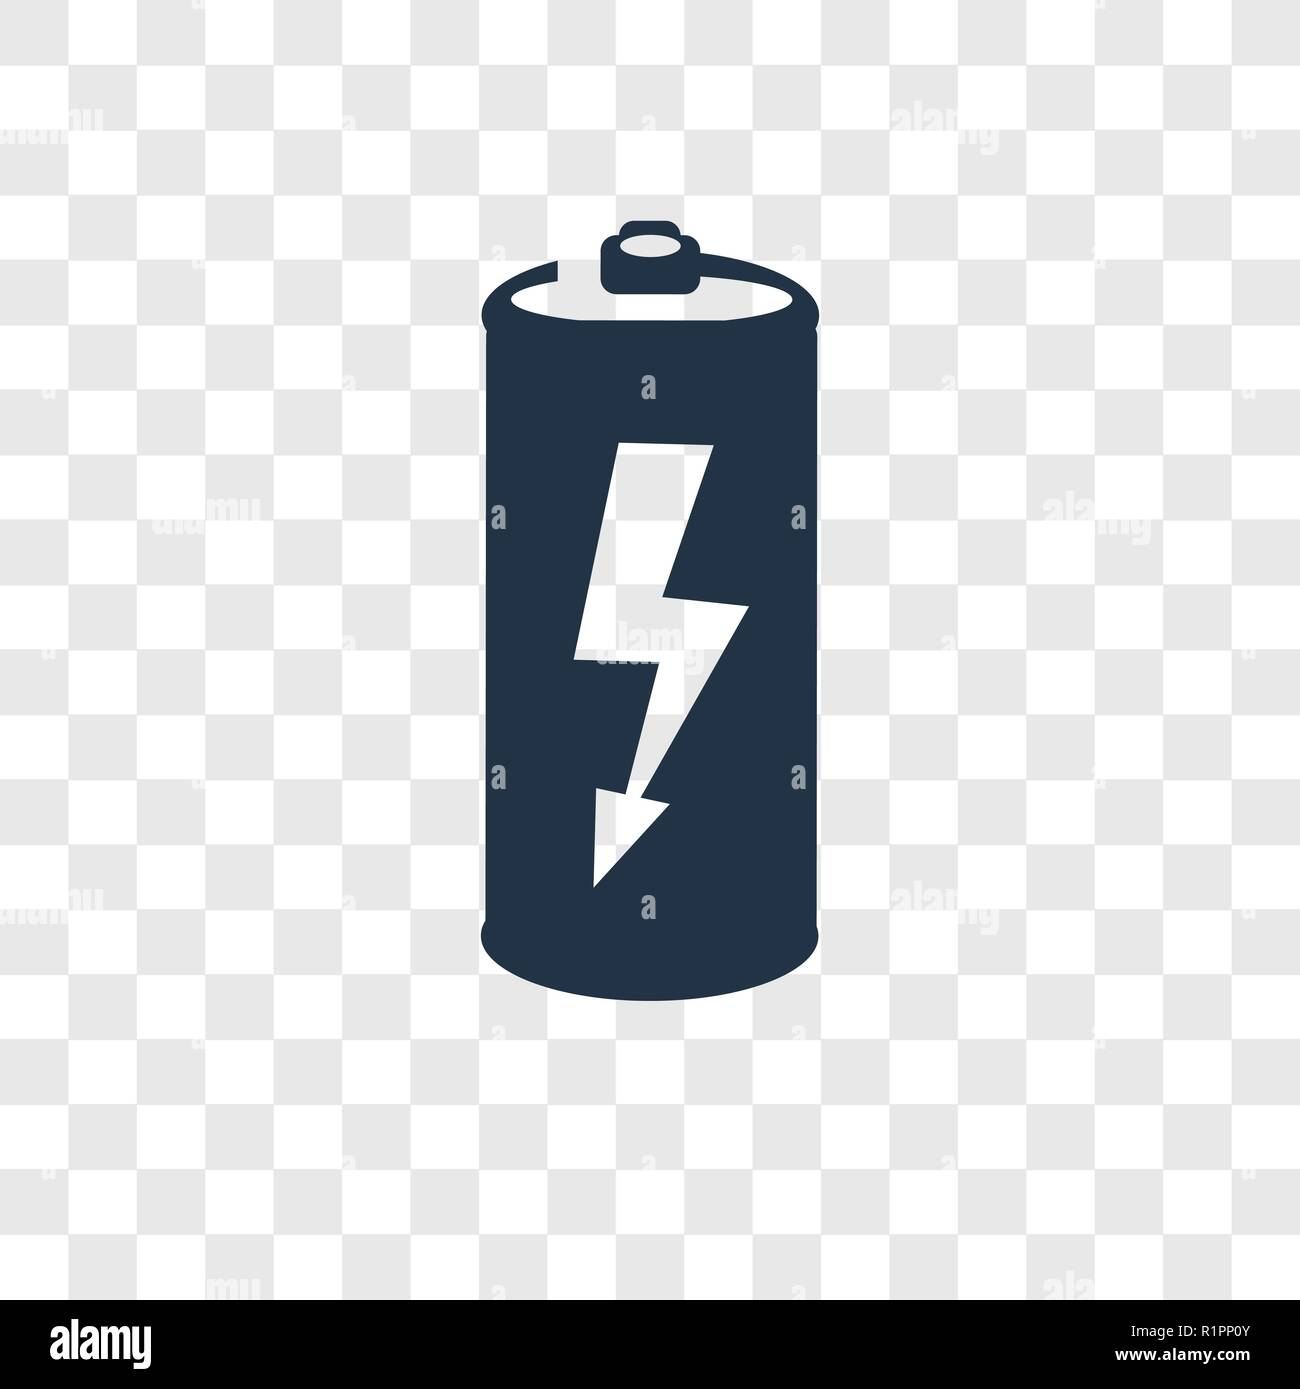 battery vector icon isolated on transparent background battery transparency logo concept stock vector image art alamy https www alamy com battery vector icon isolated on transparent background battery transparency logo concept image224849659 html